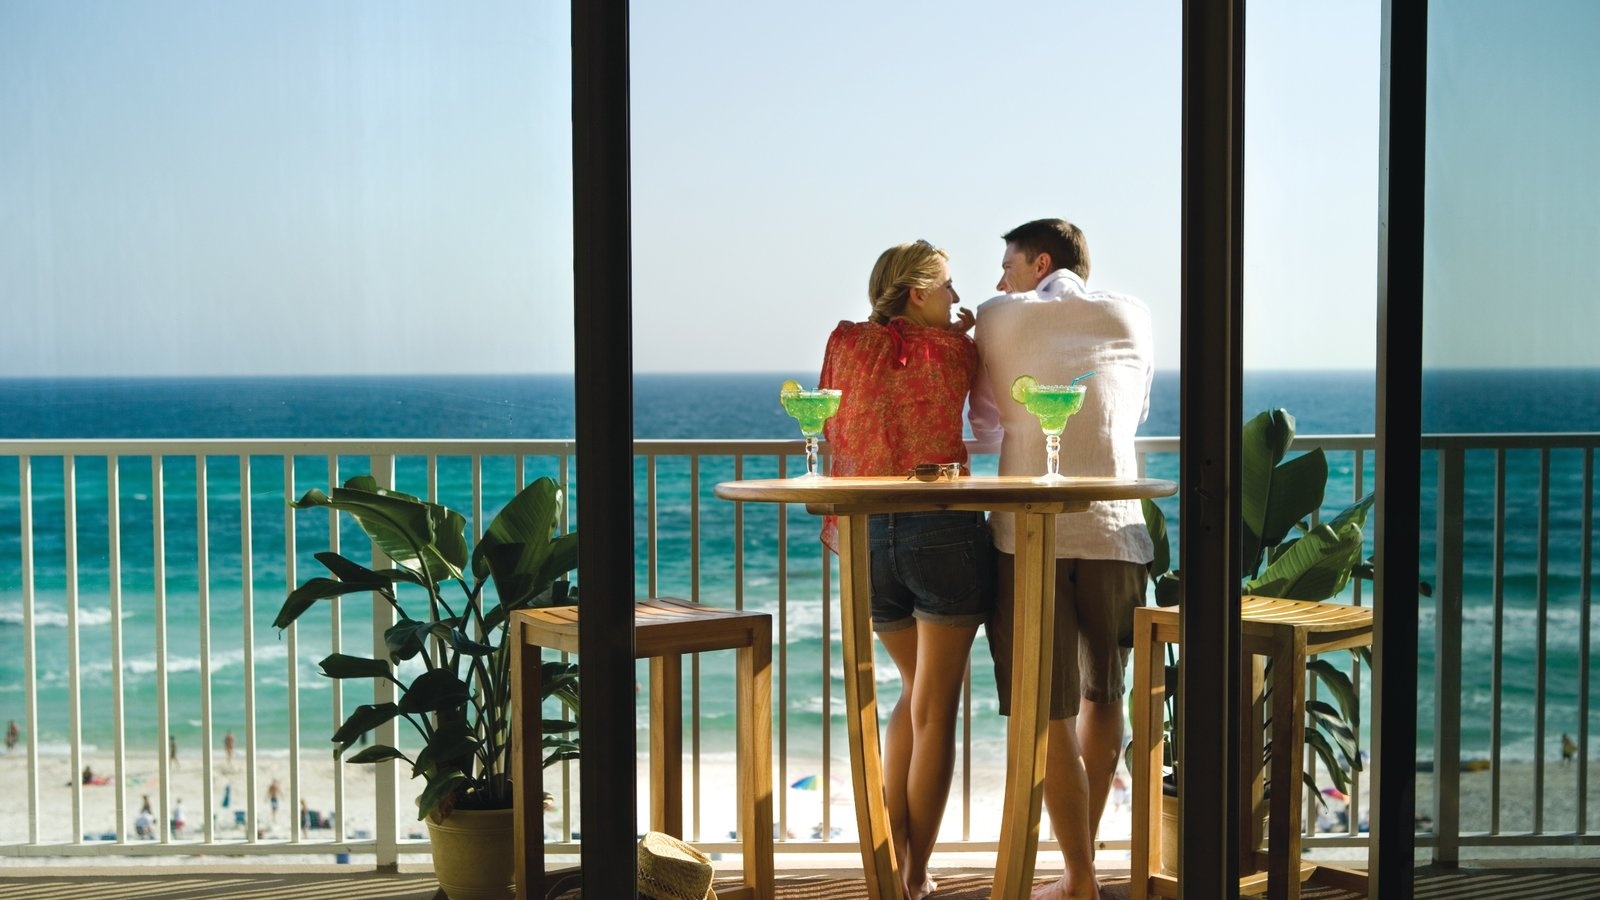 panama city beach latin singles The bustling resort town of panama city beach beckons vacationers with its 27 miles of sparkling sandy beaches, kid-friendly activities, and some of the best sport fishing in florida.